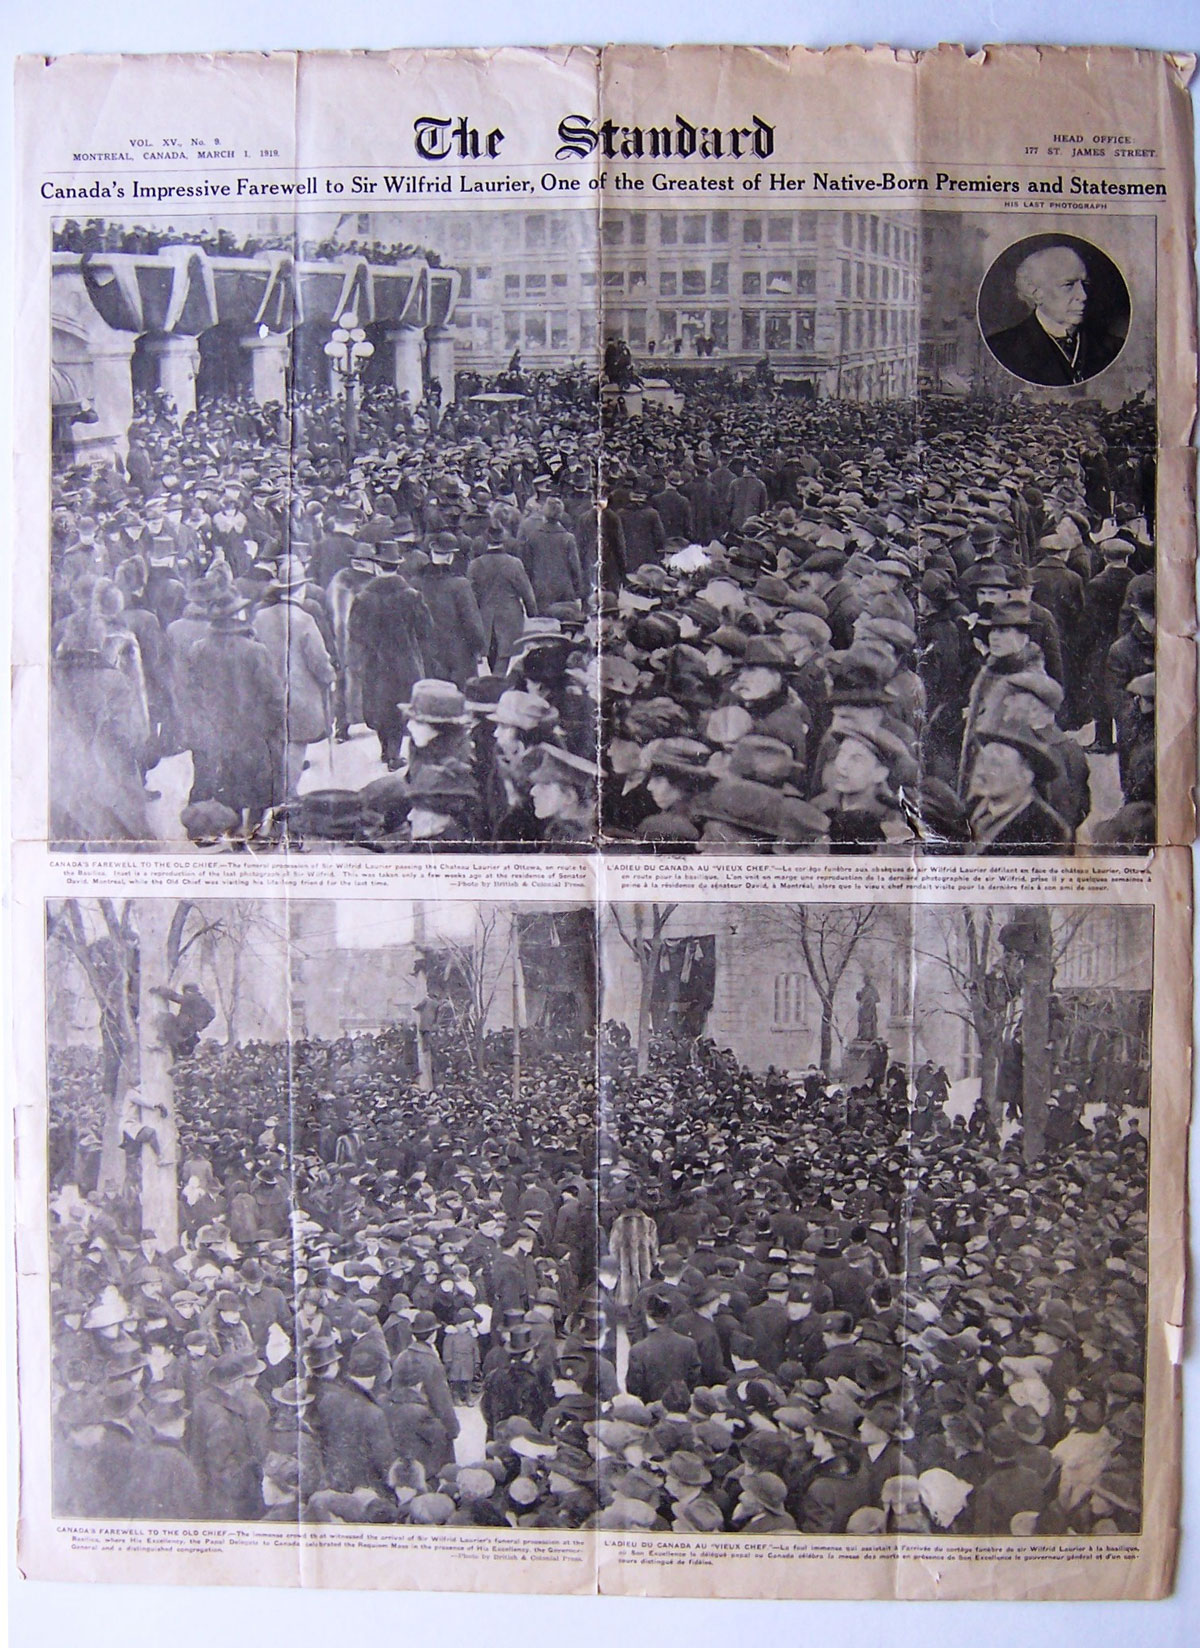 Special edition of The Standard, March 1, 1919, featuring photographs from Laurier's funeral. Canadian Museum of History, ACQ 2012.17, temporary no. 217.2r. Gift of Serge Joyal. Photo: Xavier Gélinas, 217.2r